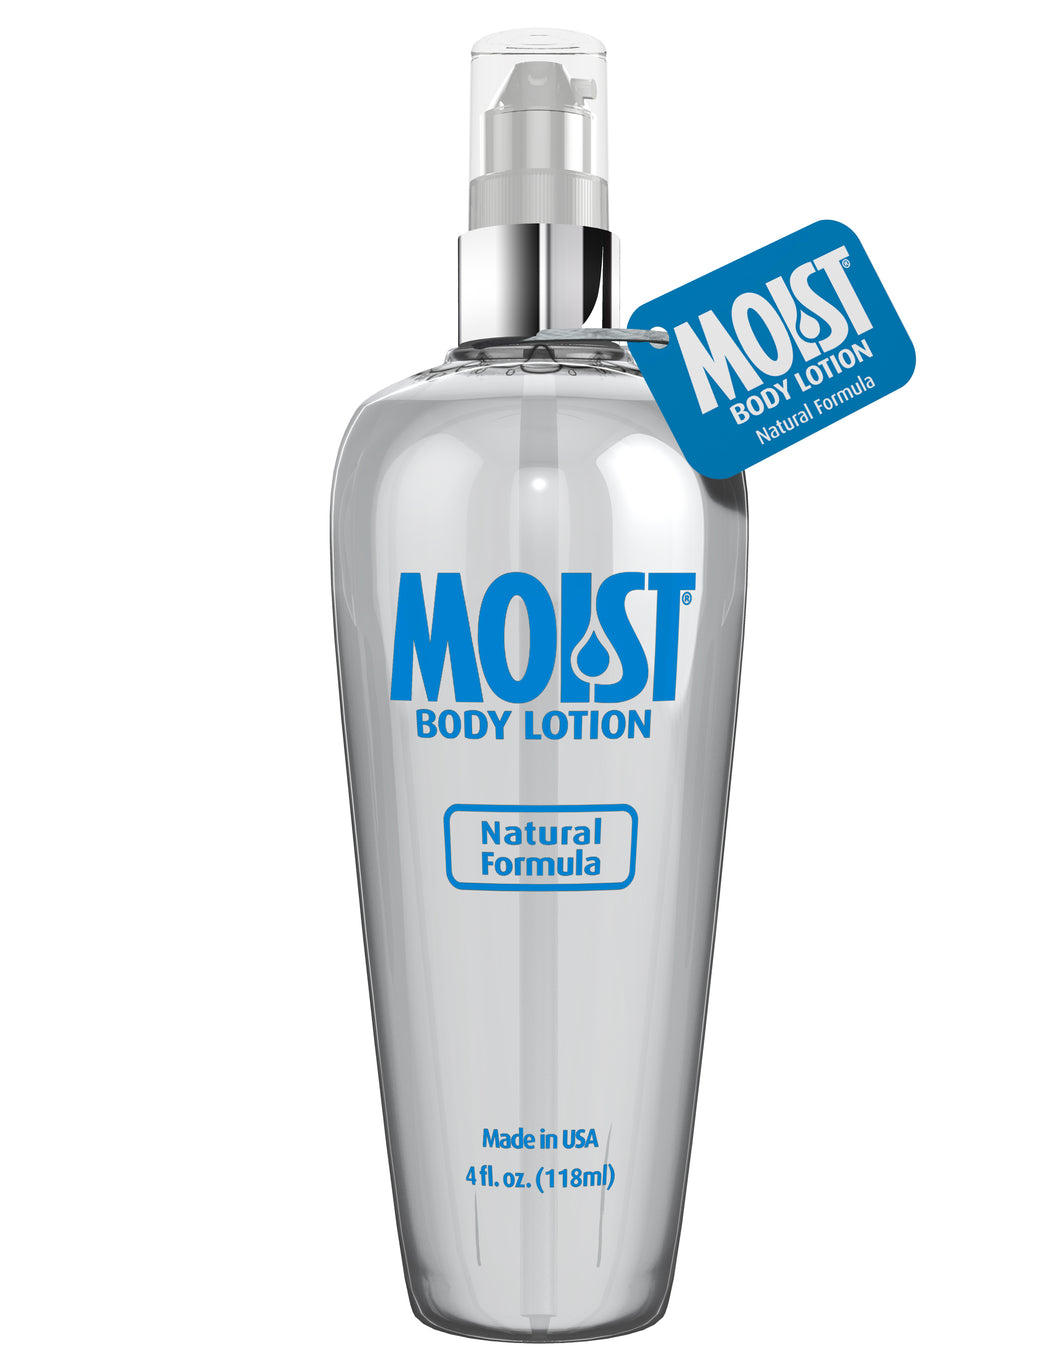 Moist Body Lotion - 4 Fl. Oz. - My sheree and More